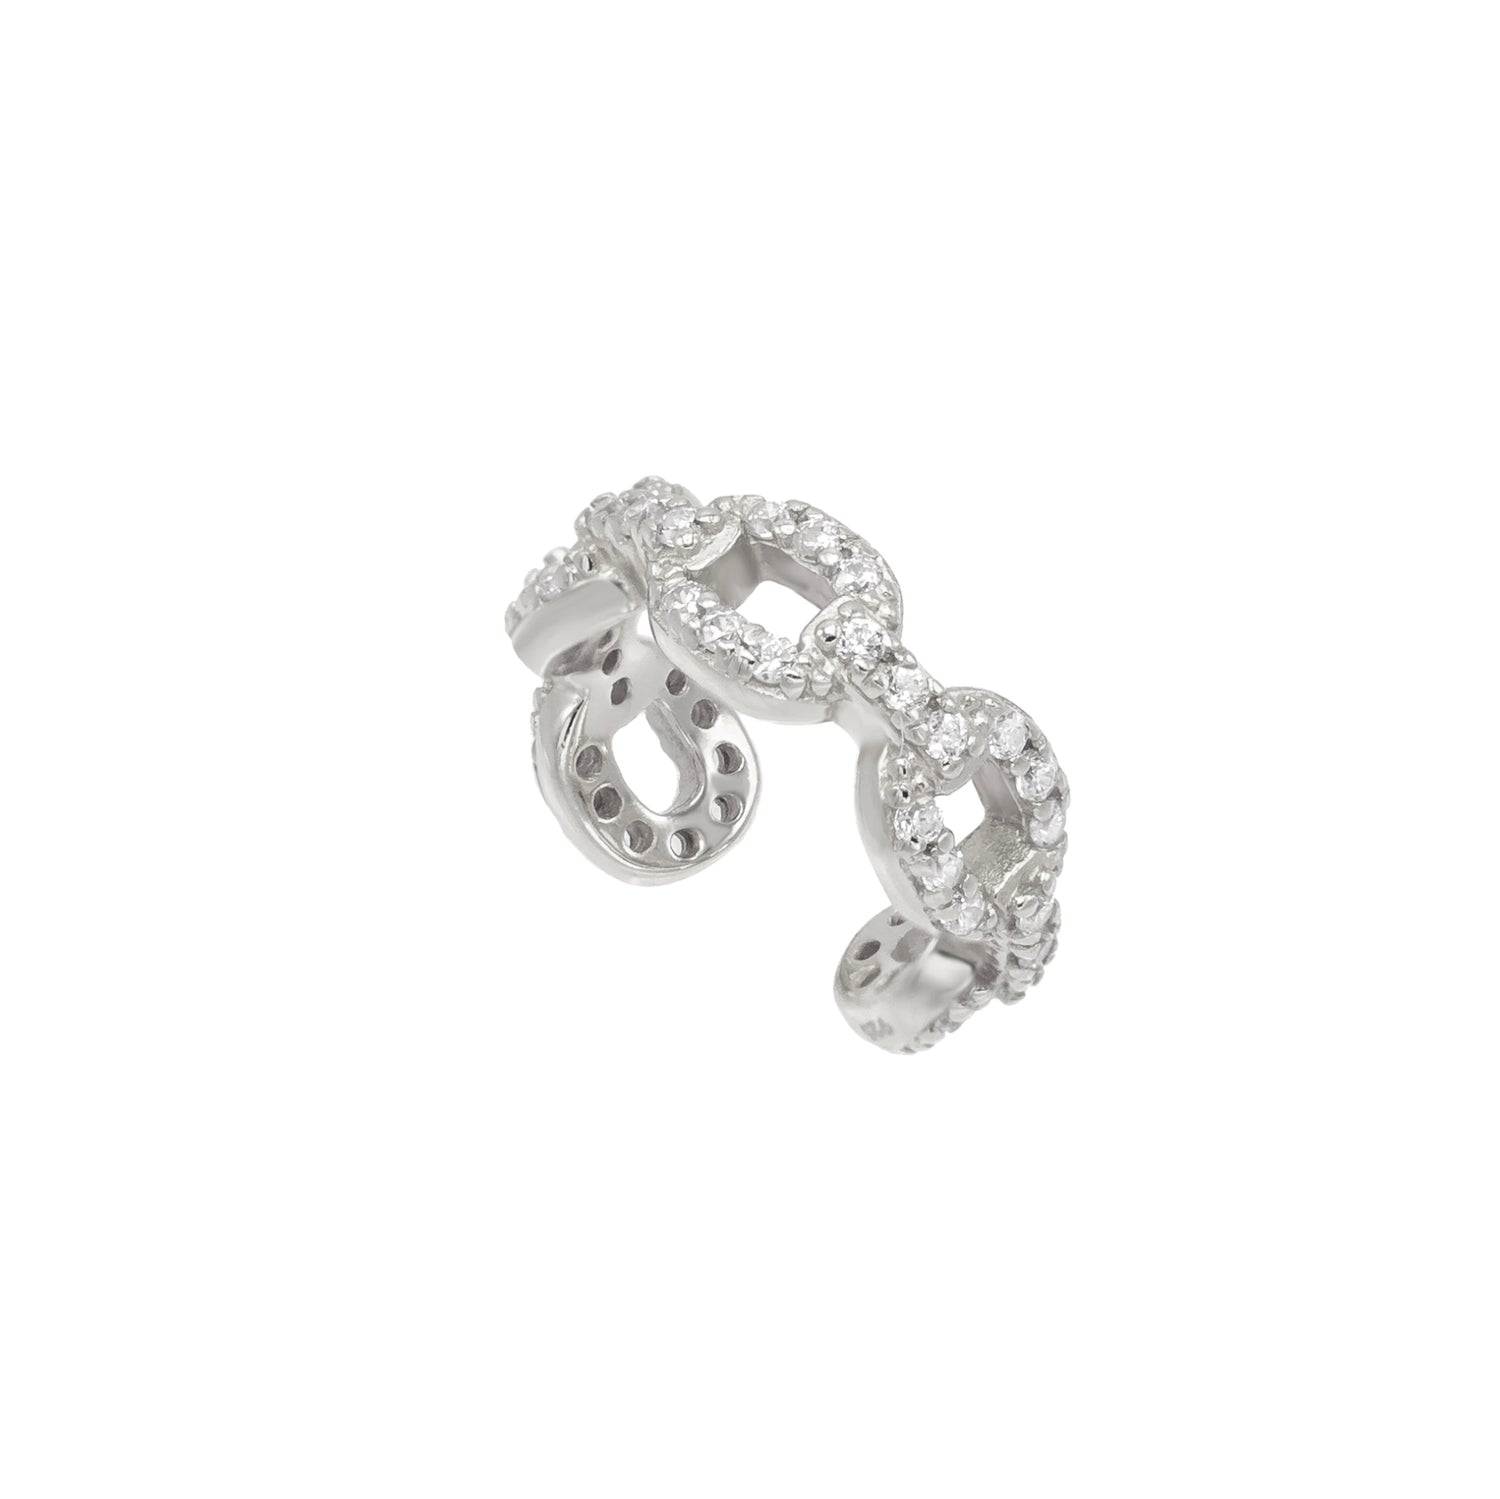 Luxe Pave Chain Ear Cuff